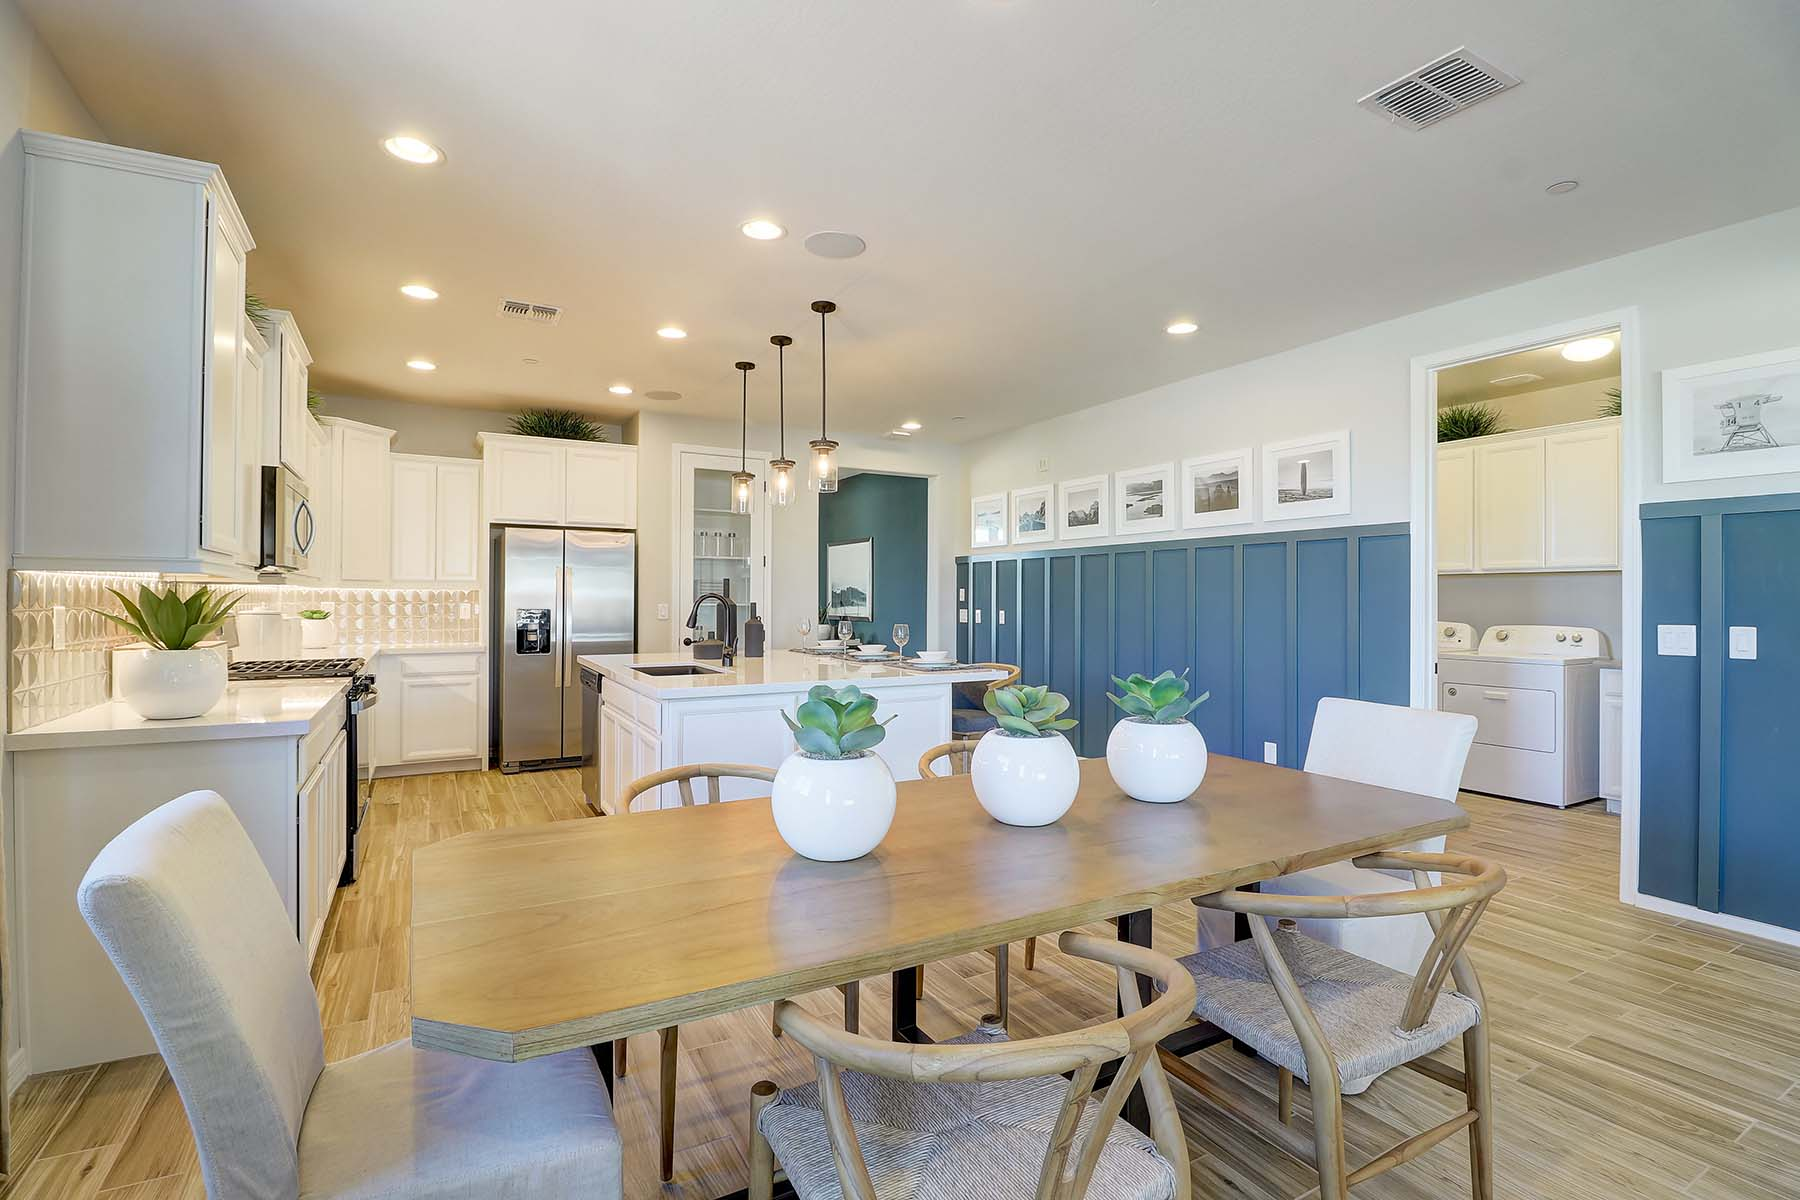 Everly Plan Dining at Brookside at Arroyo Seco in Buckeye Arizona by Mattamy Homes